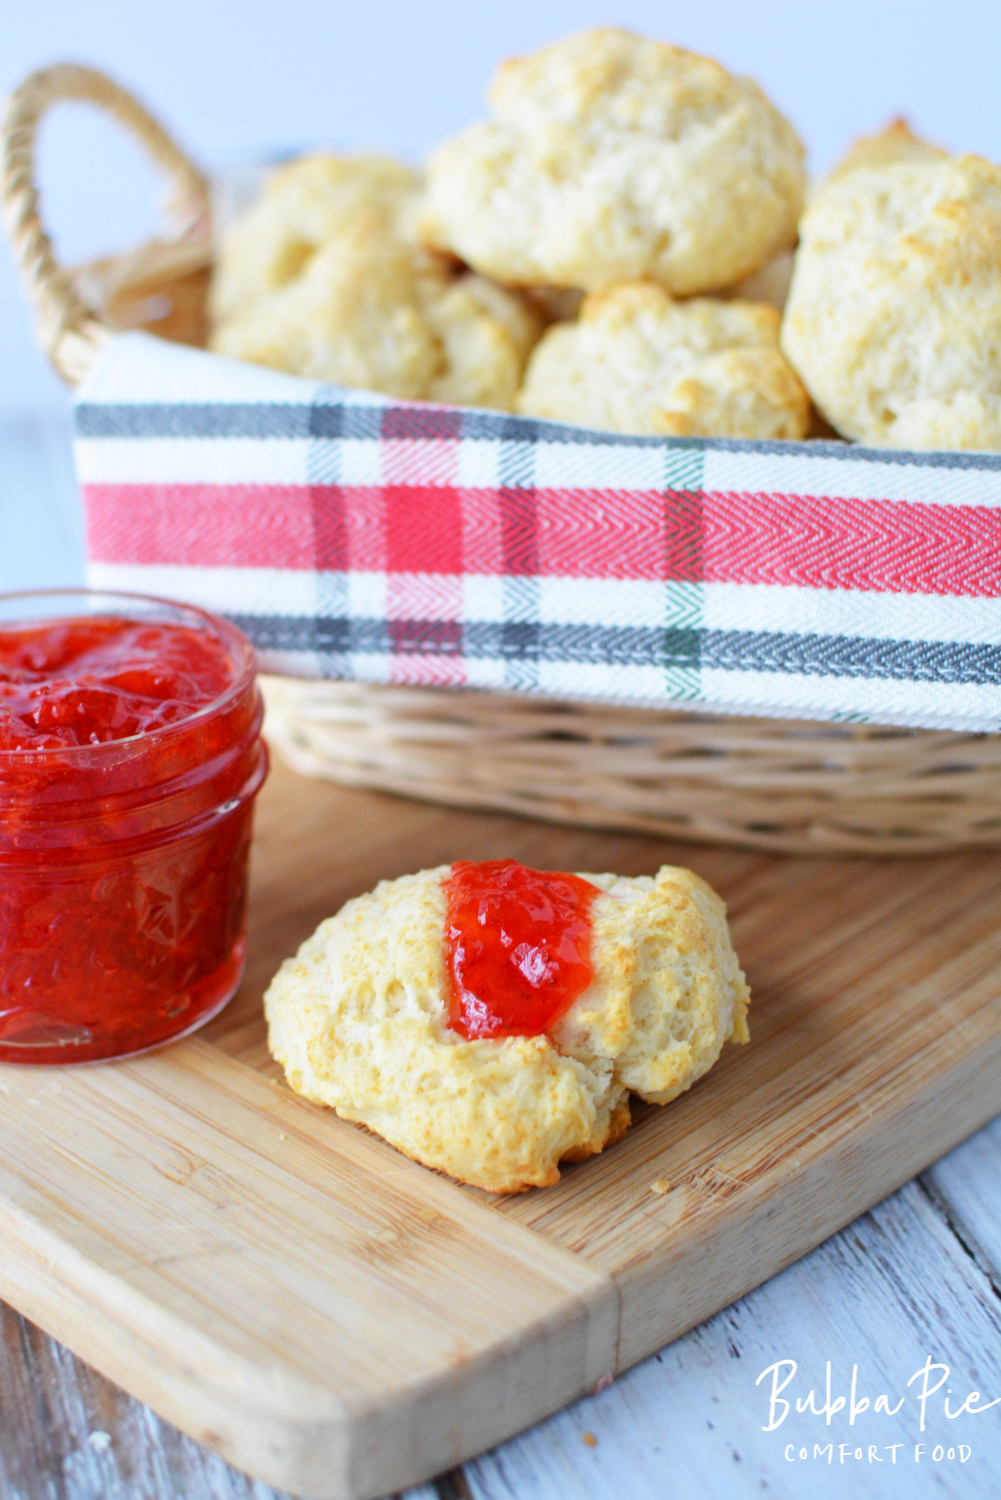 This Homemade Drop Biscuit Recipe tastes great with strawberry jam